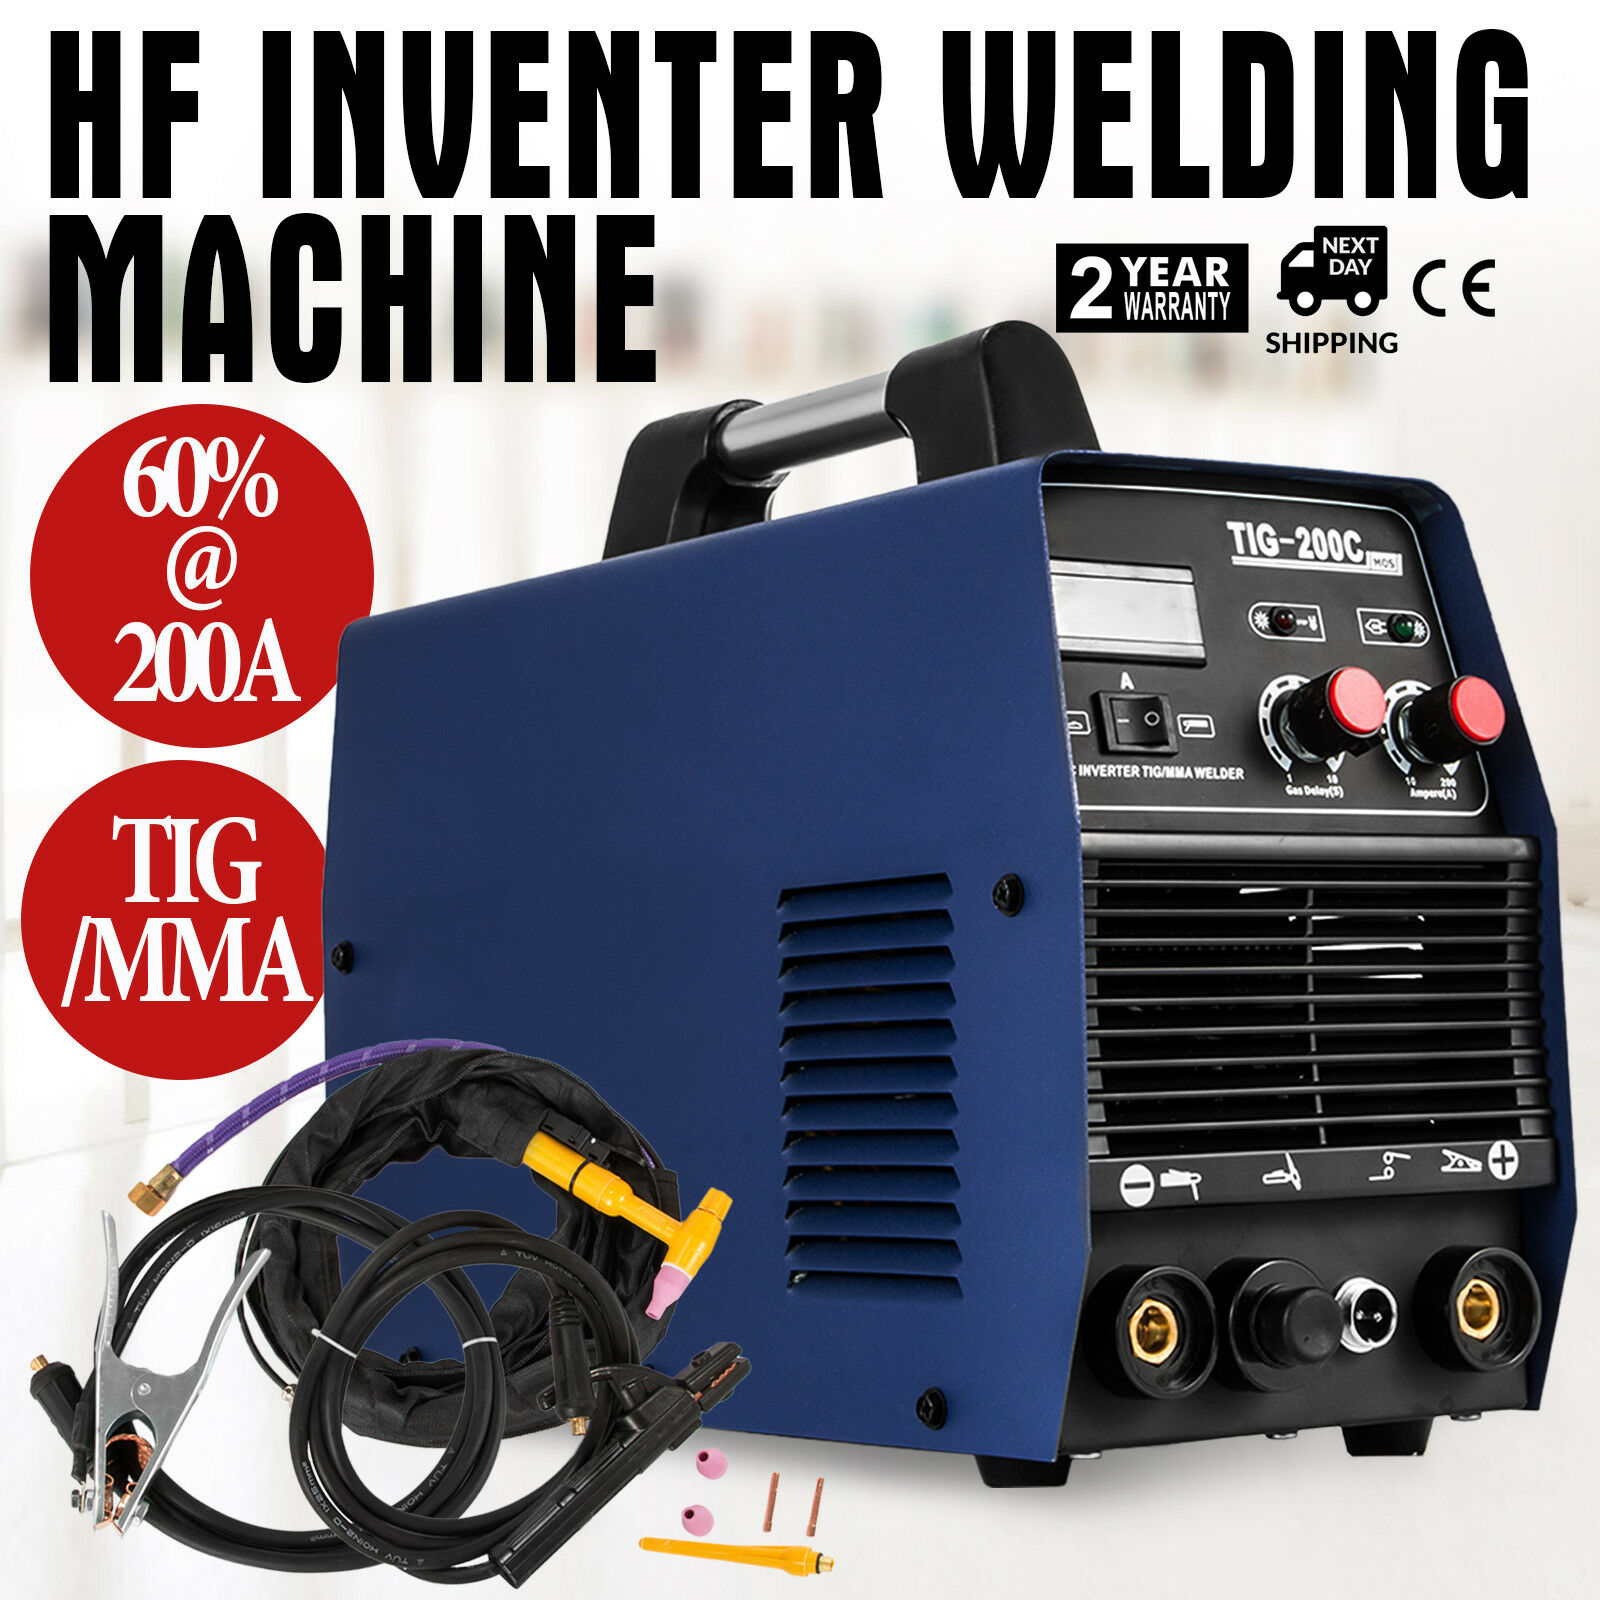 TIG welding machine <font><b>200</b></font> Ampere - IGBT <font><b>inverter</b></font> TIG MMA DC E-Hand HF-ignition 230 V image